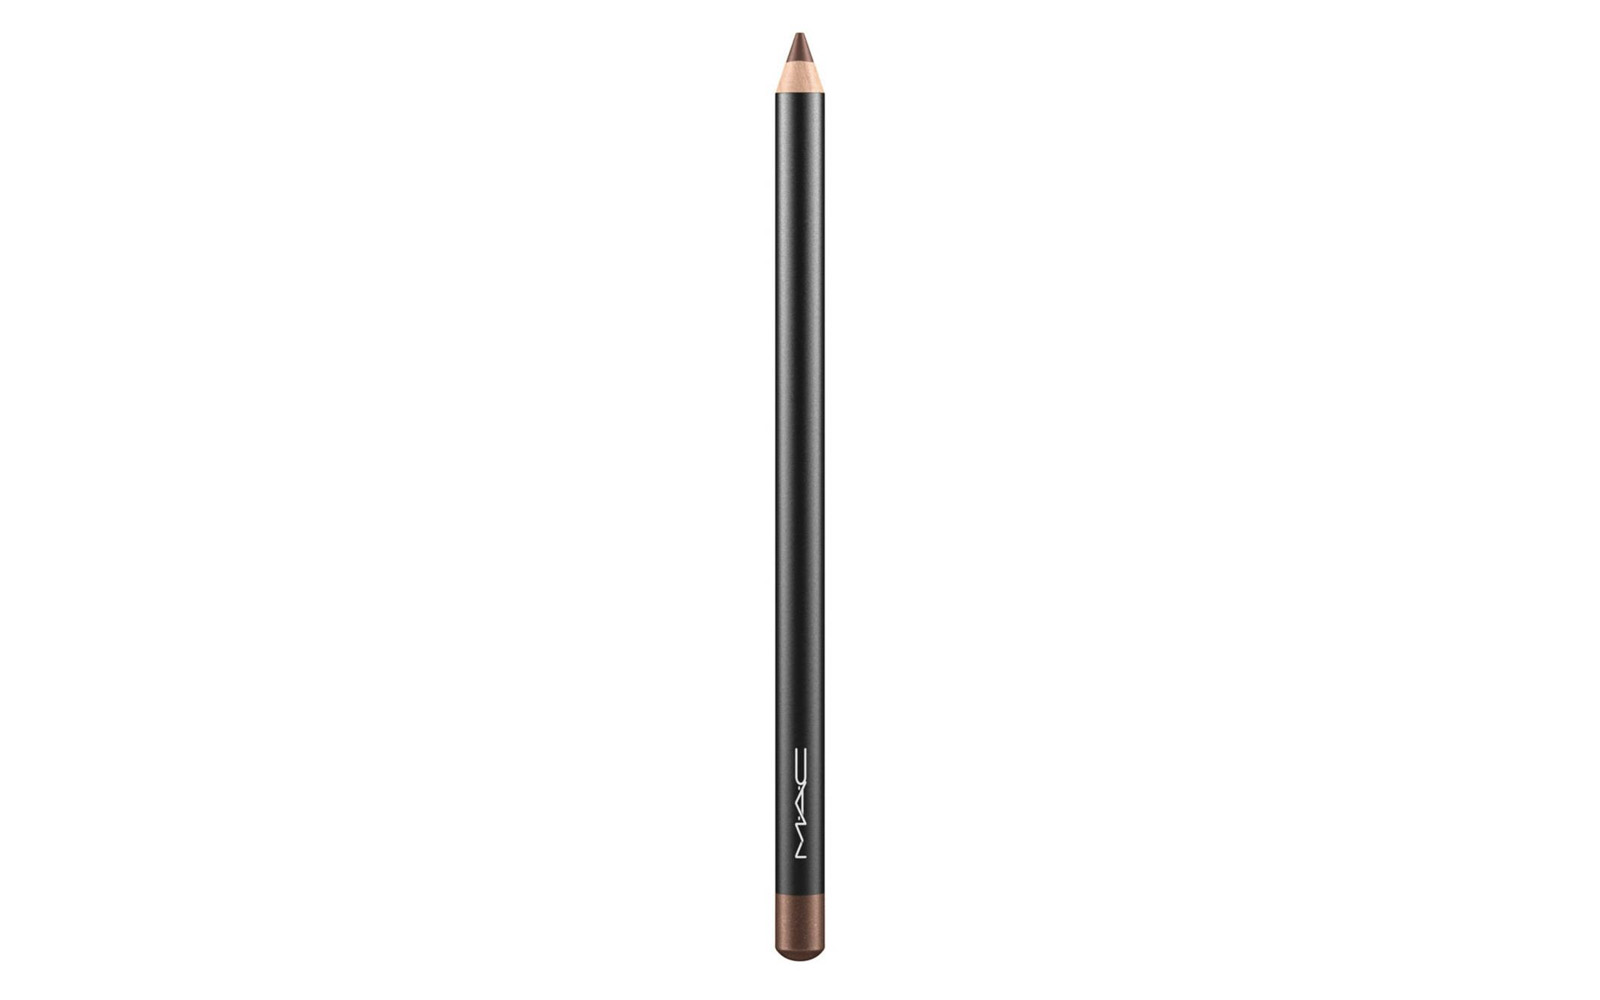 M.A.C. Eyeliner in Teddy